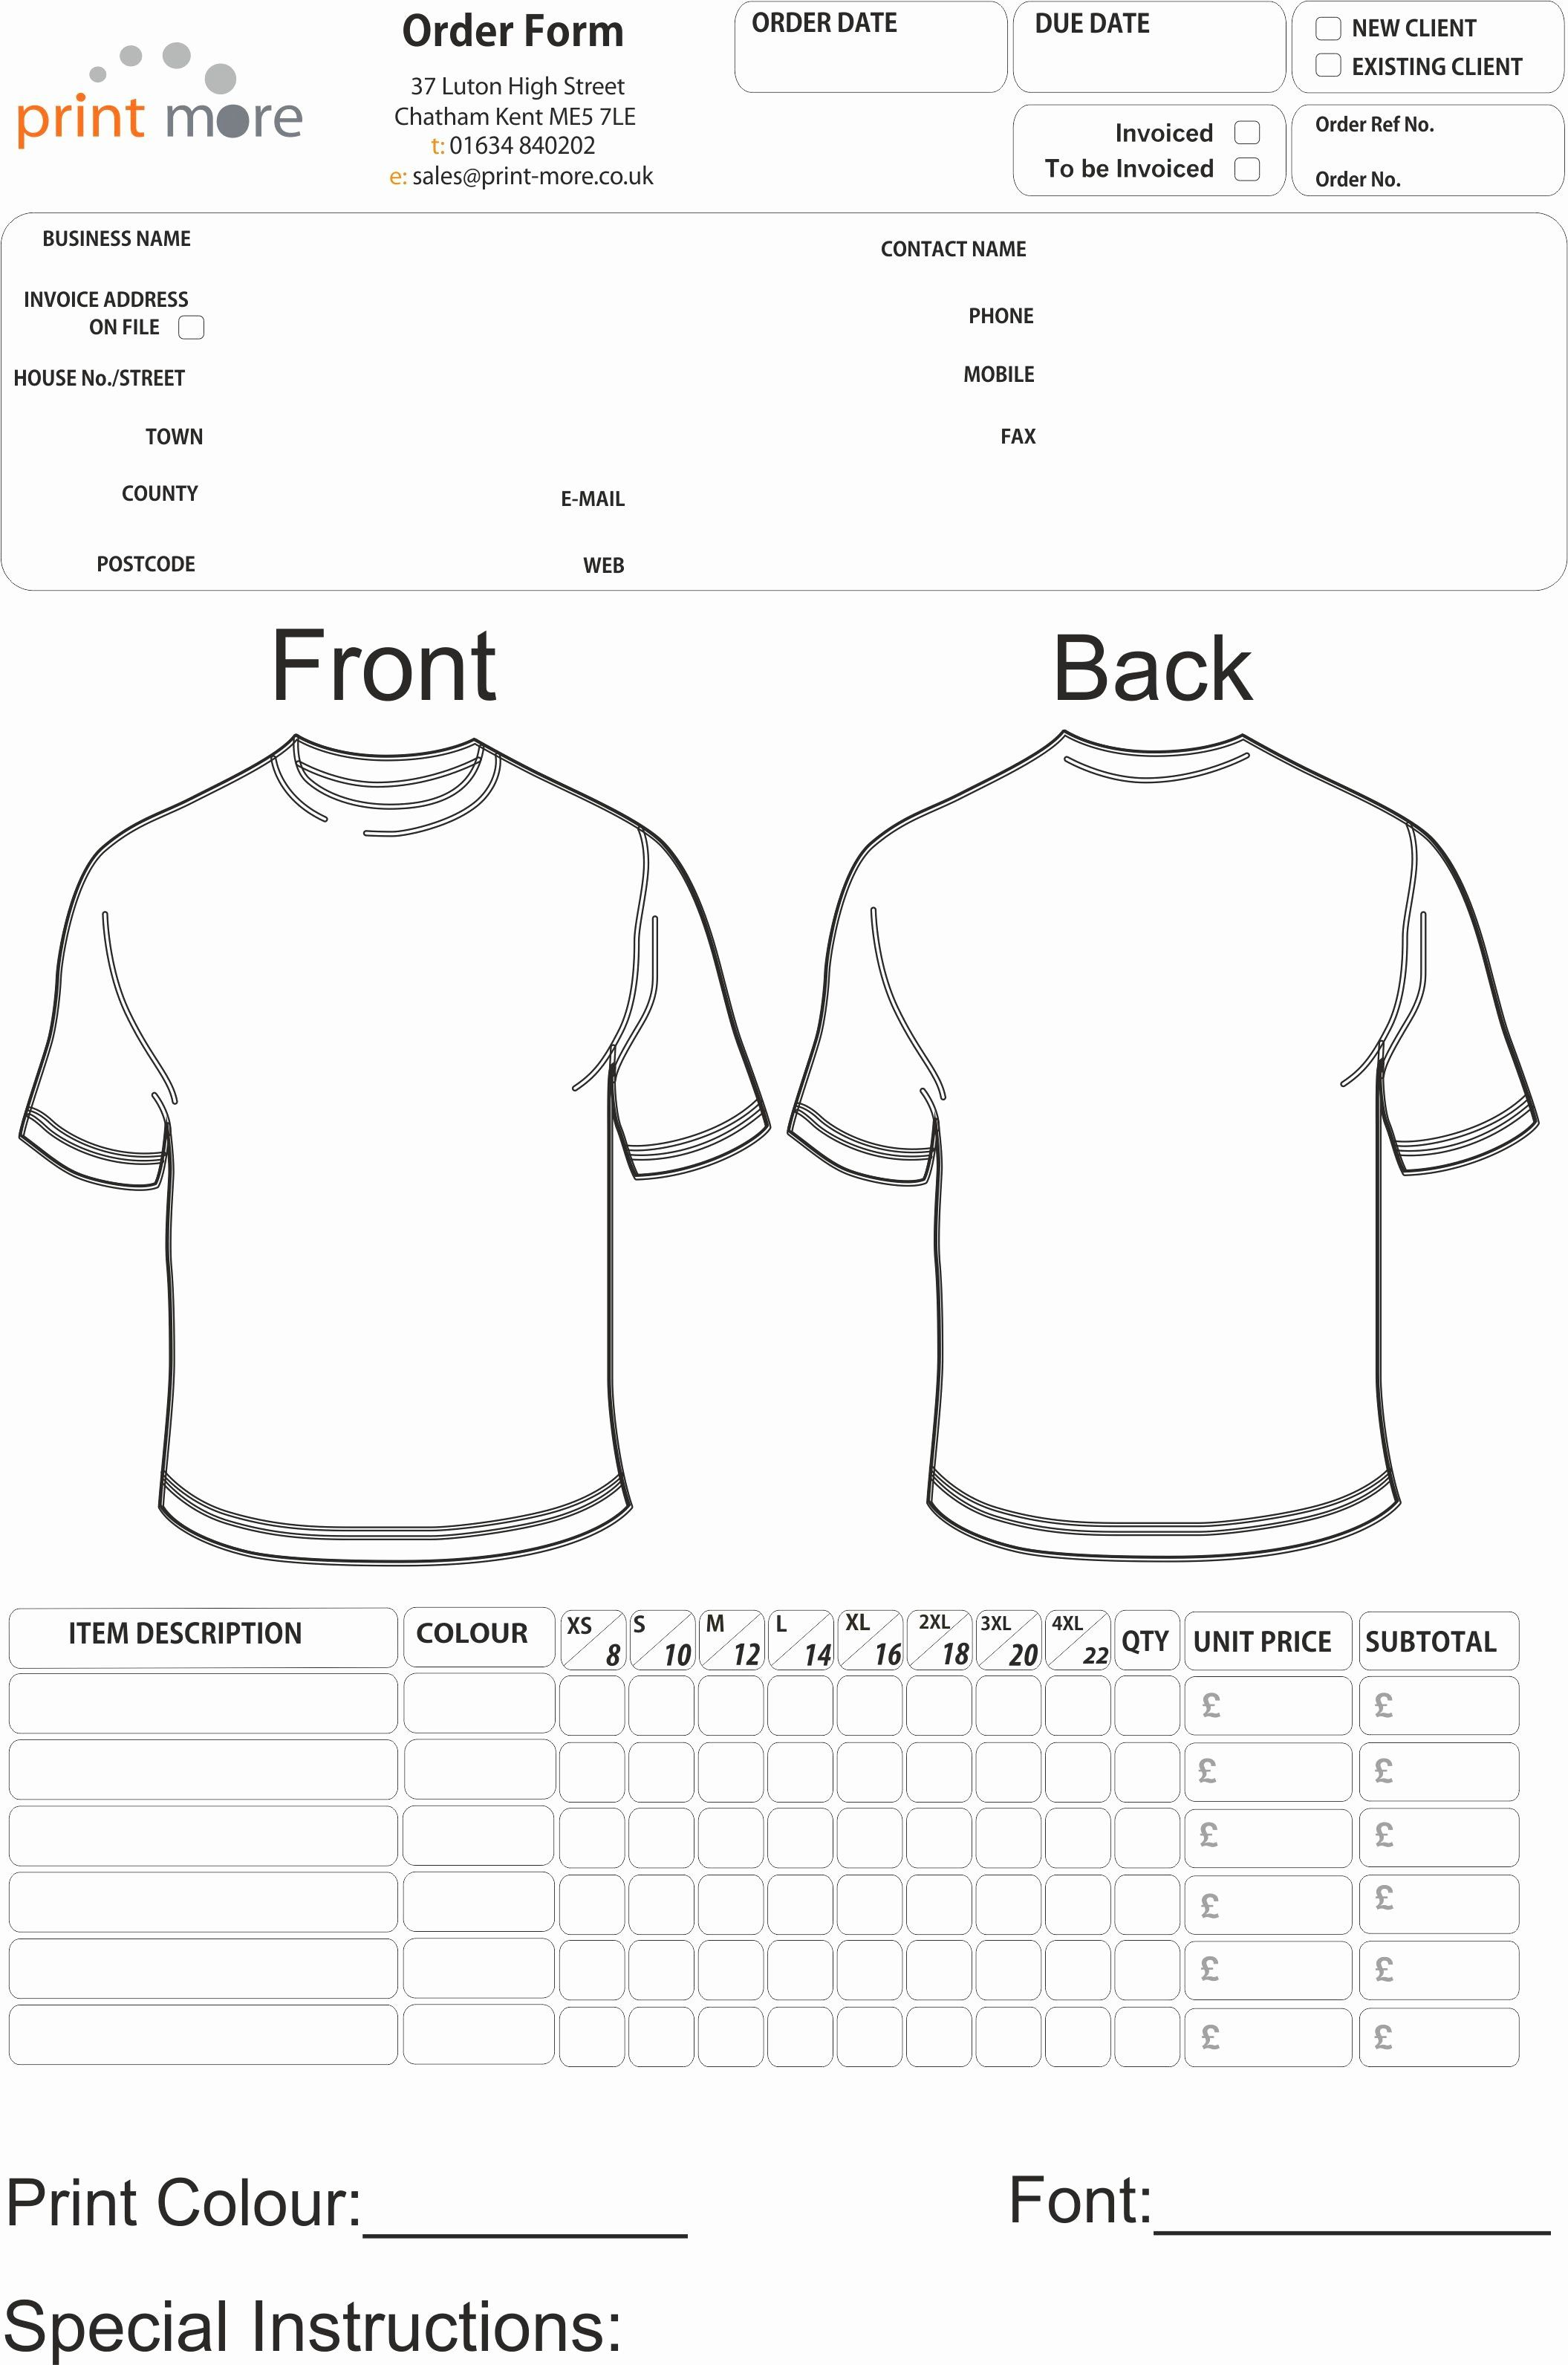 Pre order form Template Lovely T Shirt order form Template